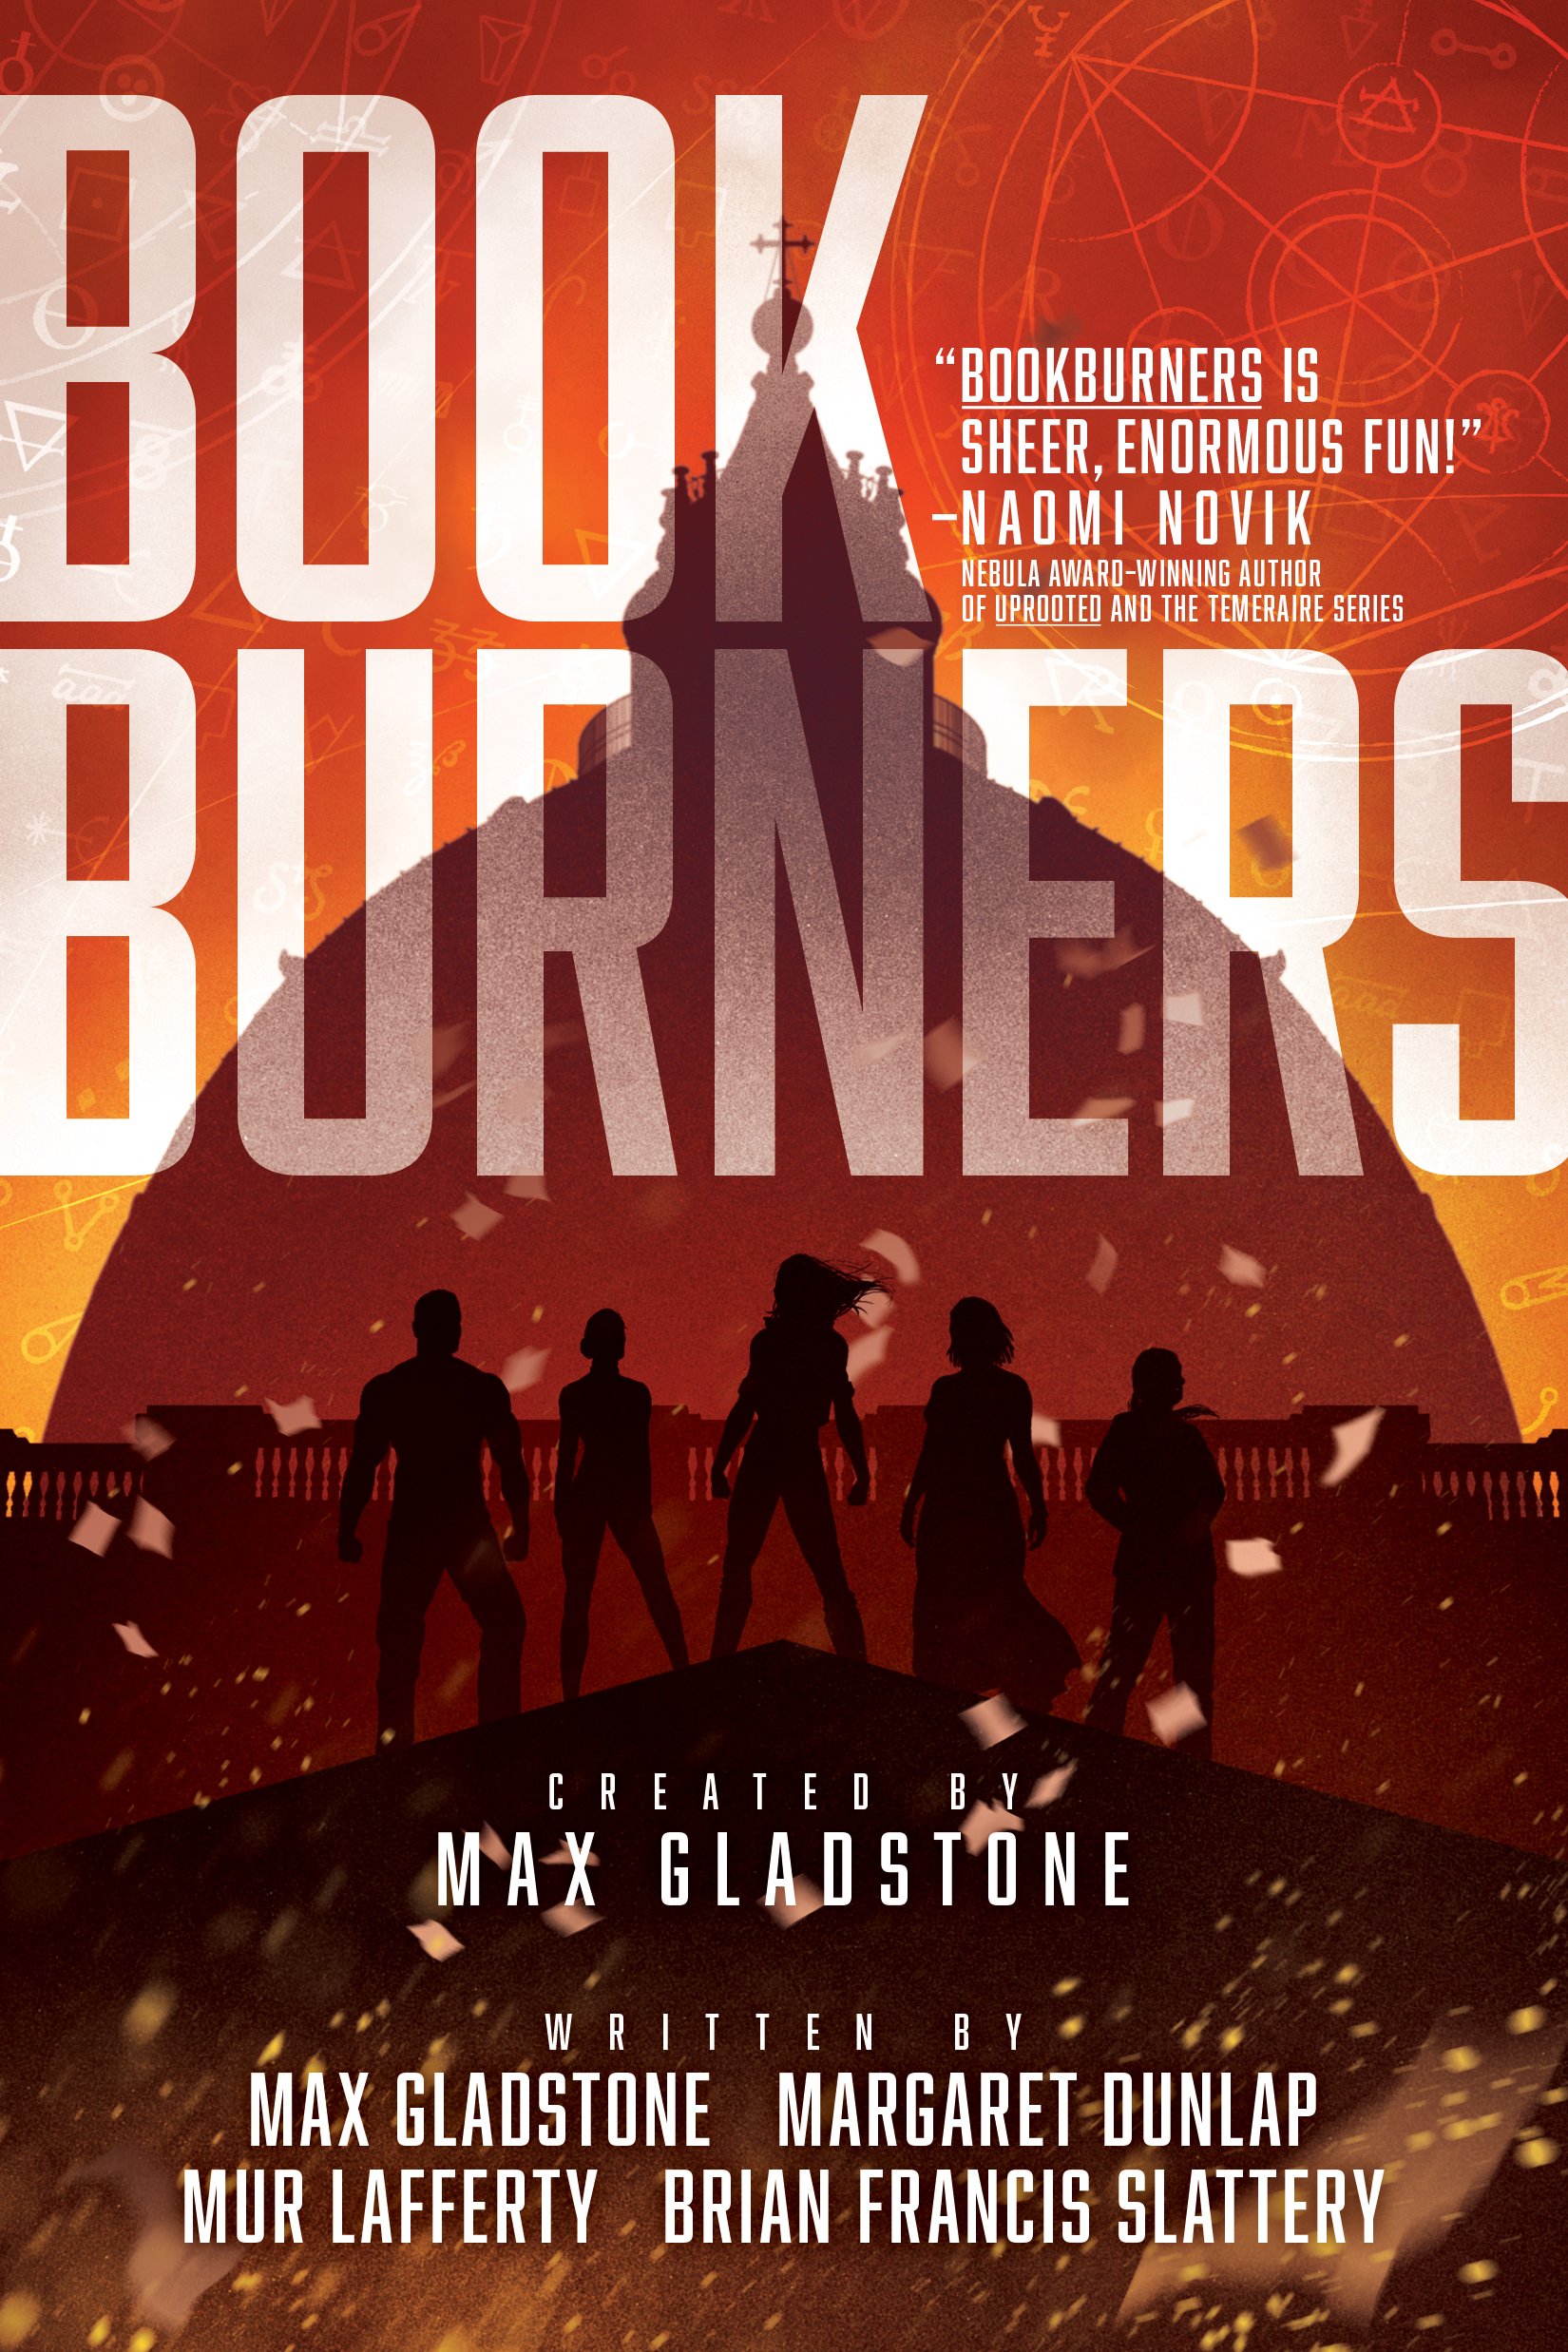 Bookburners cover image